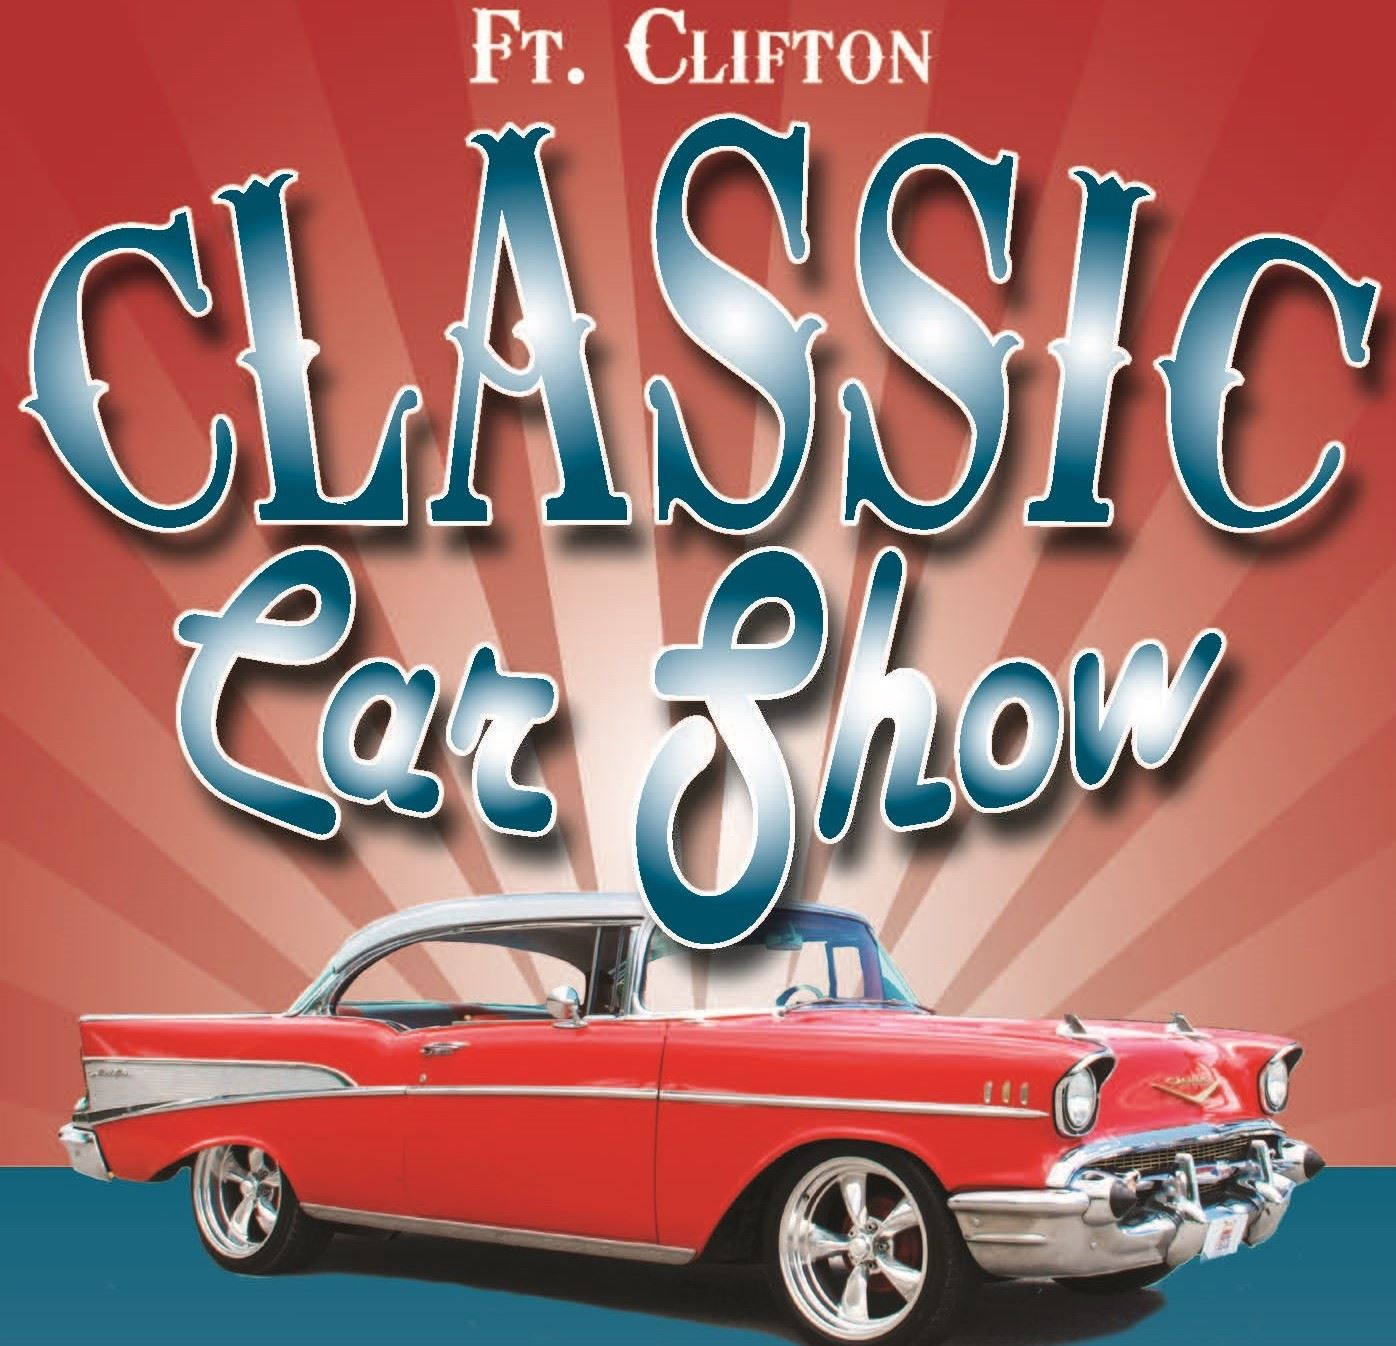 2019 Fort Clifton Classic Car Show